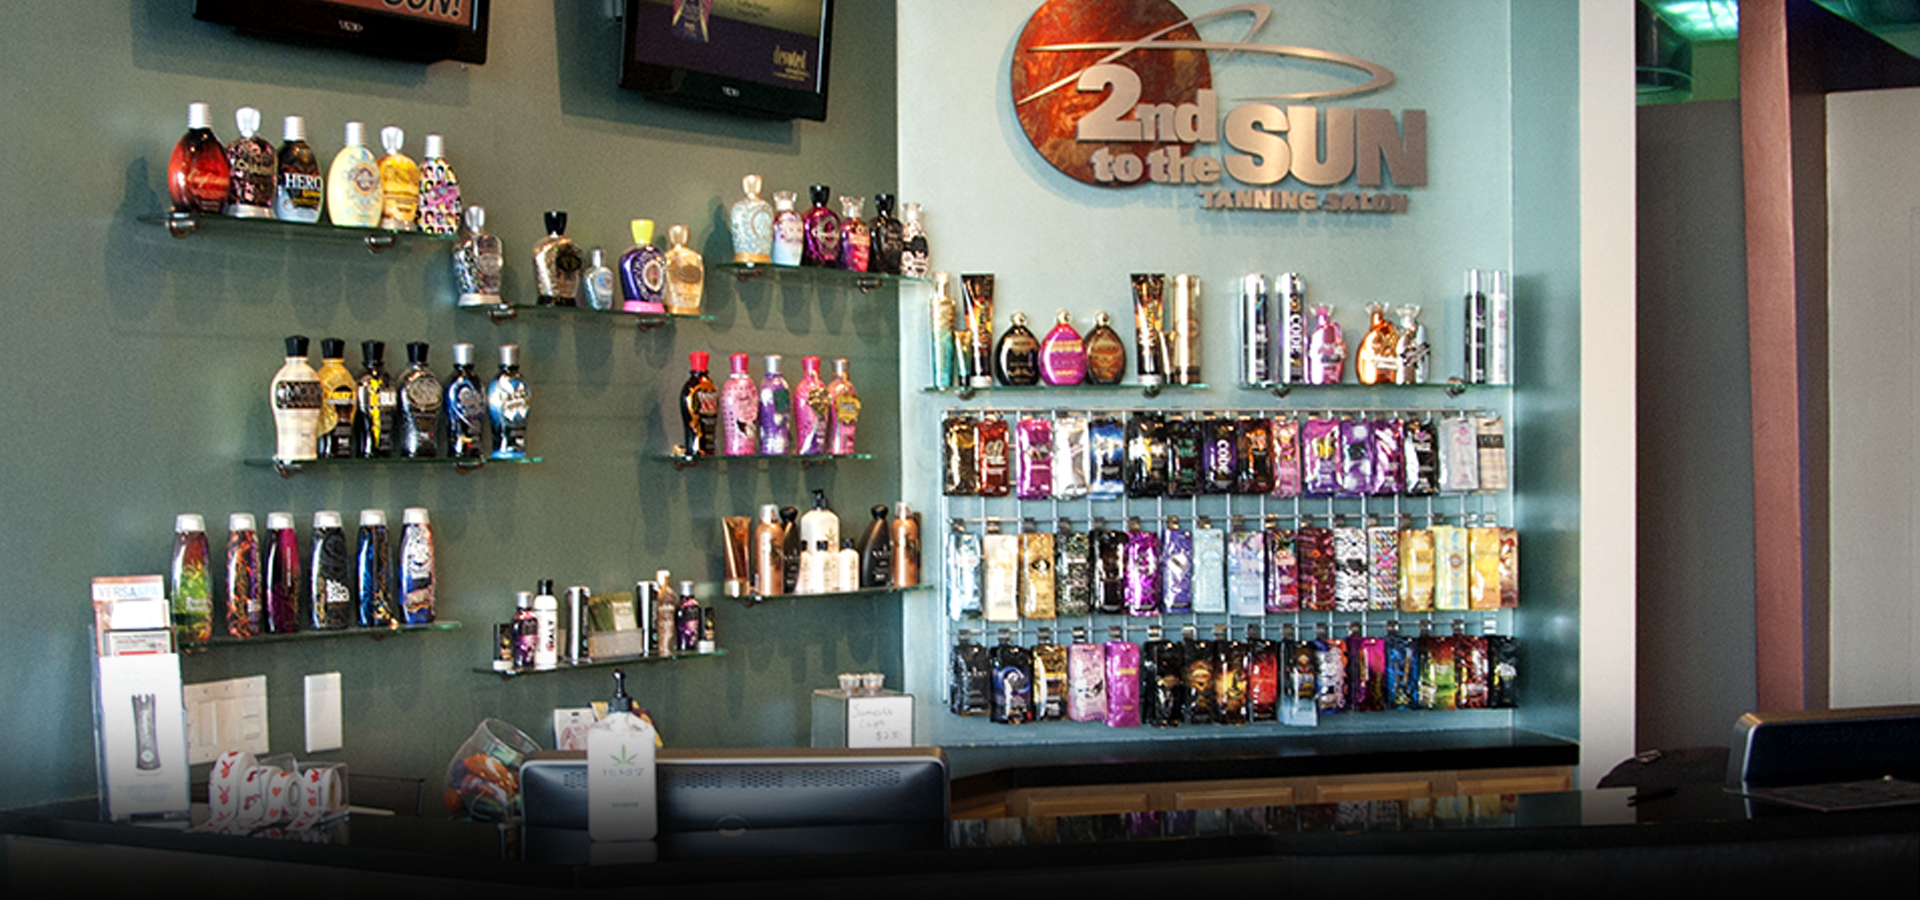 2nd to the sun tanning salons ri upscale tanning salons for 24 tanning salon